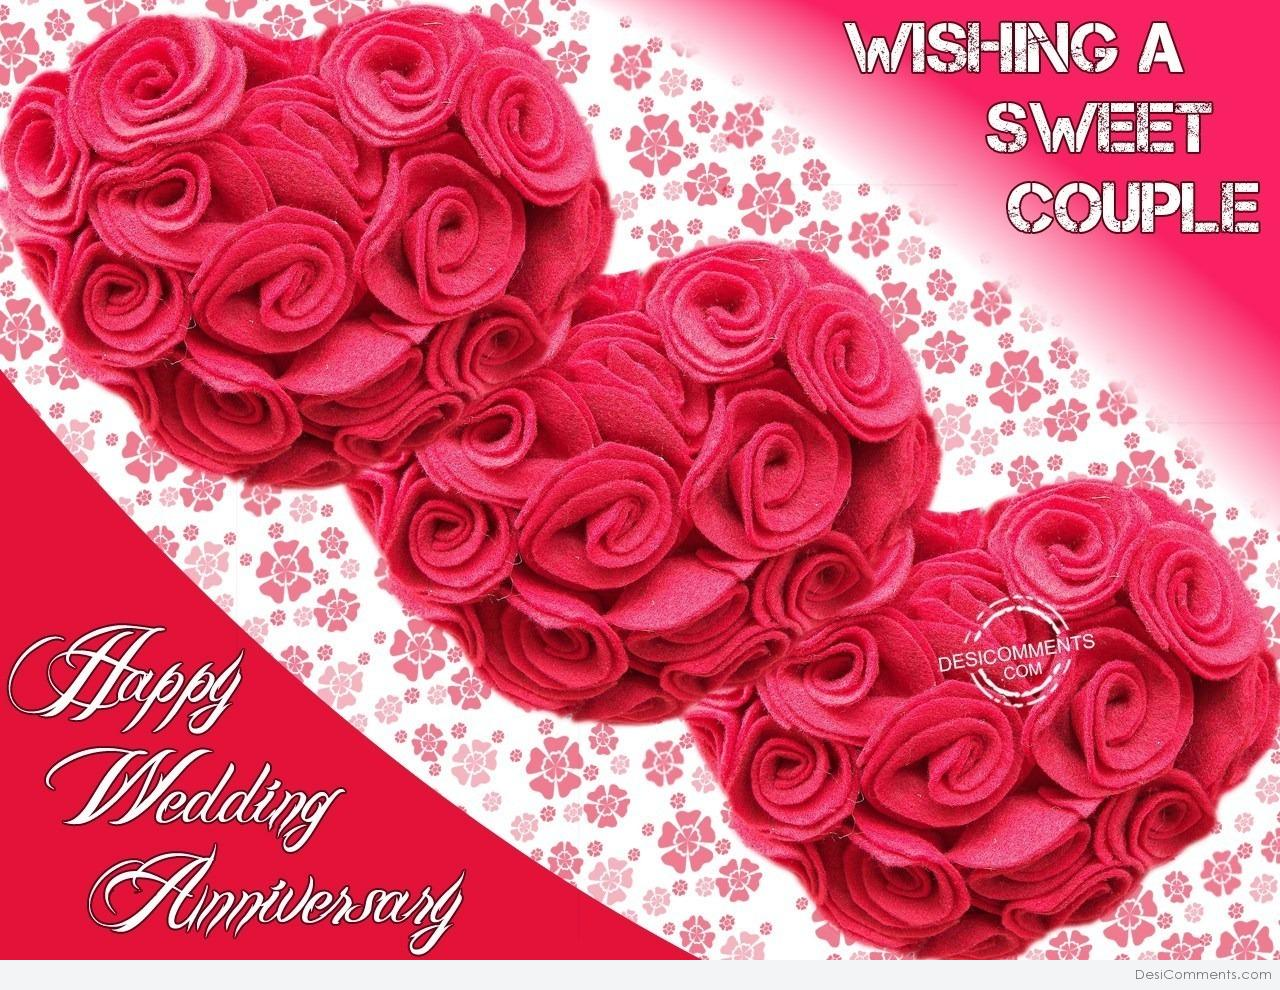 Wishing A Sweet Couple Happy Wedding Anniversary Desicomments Com